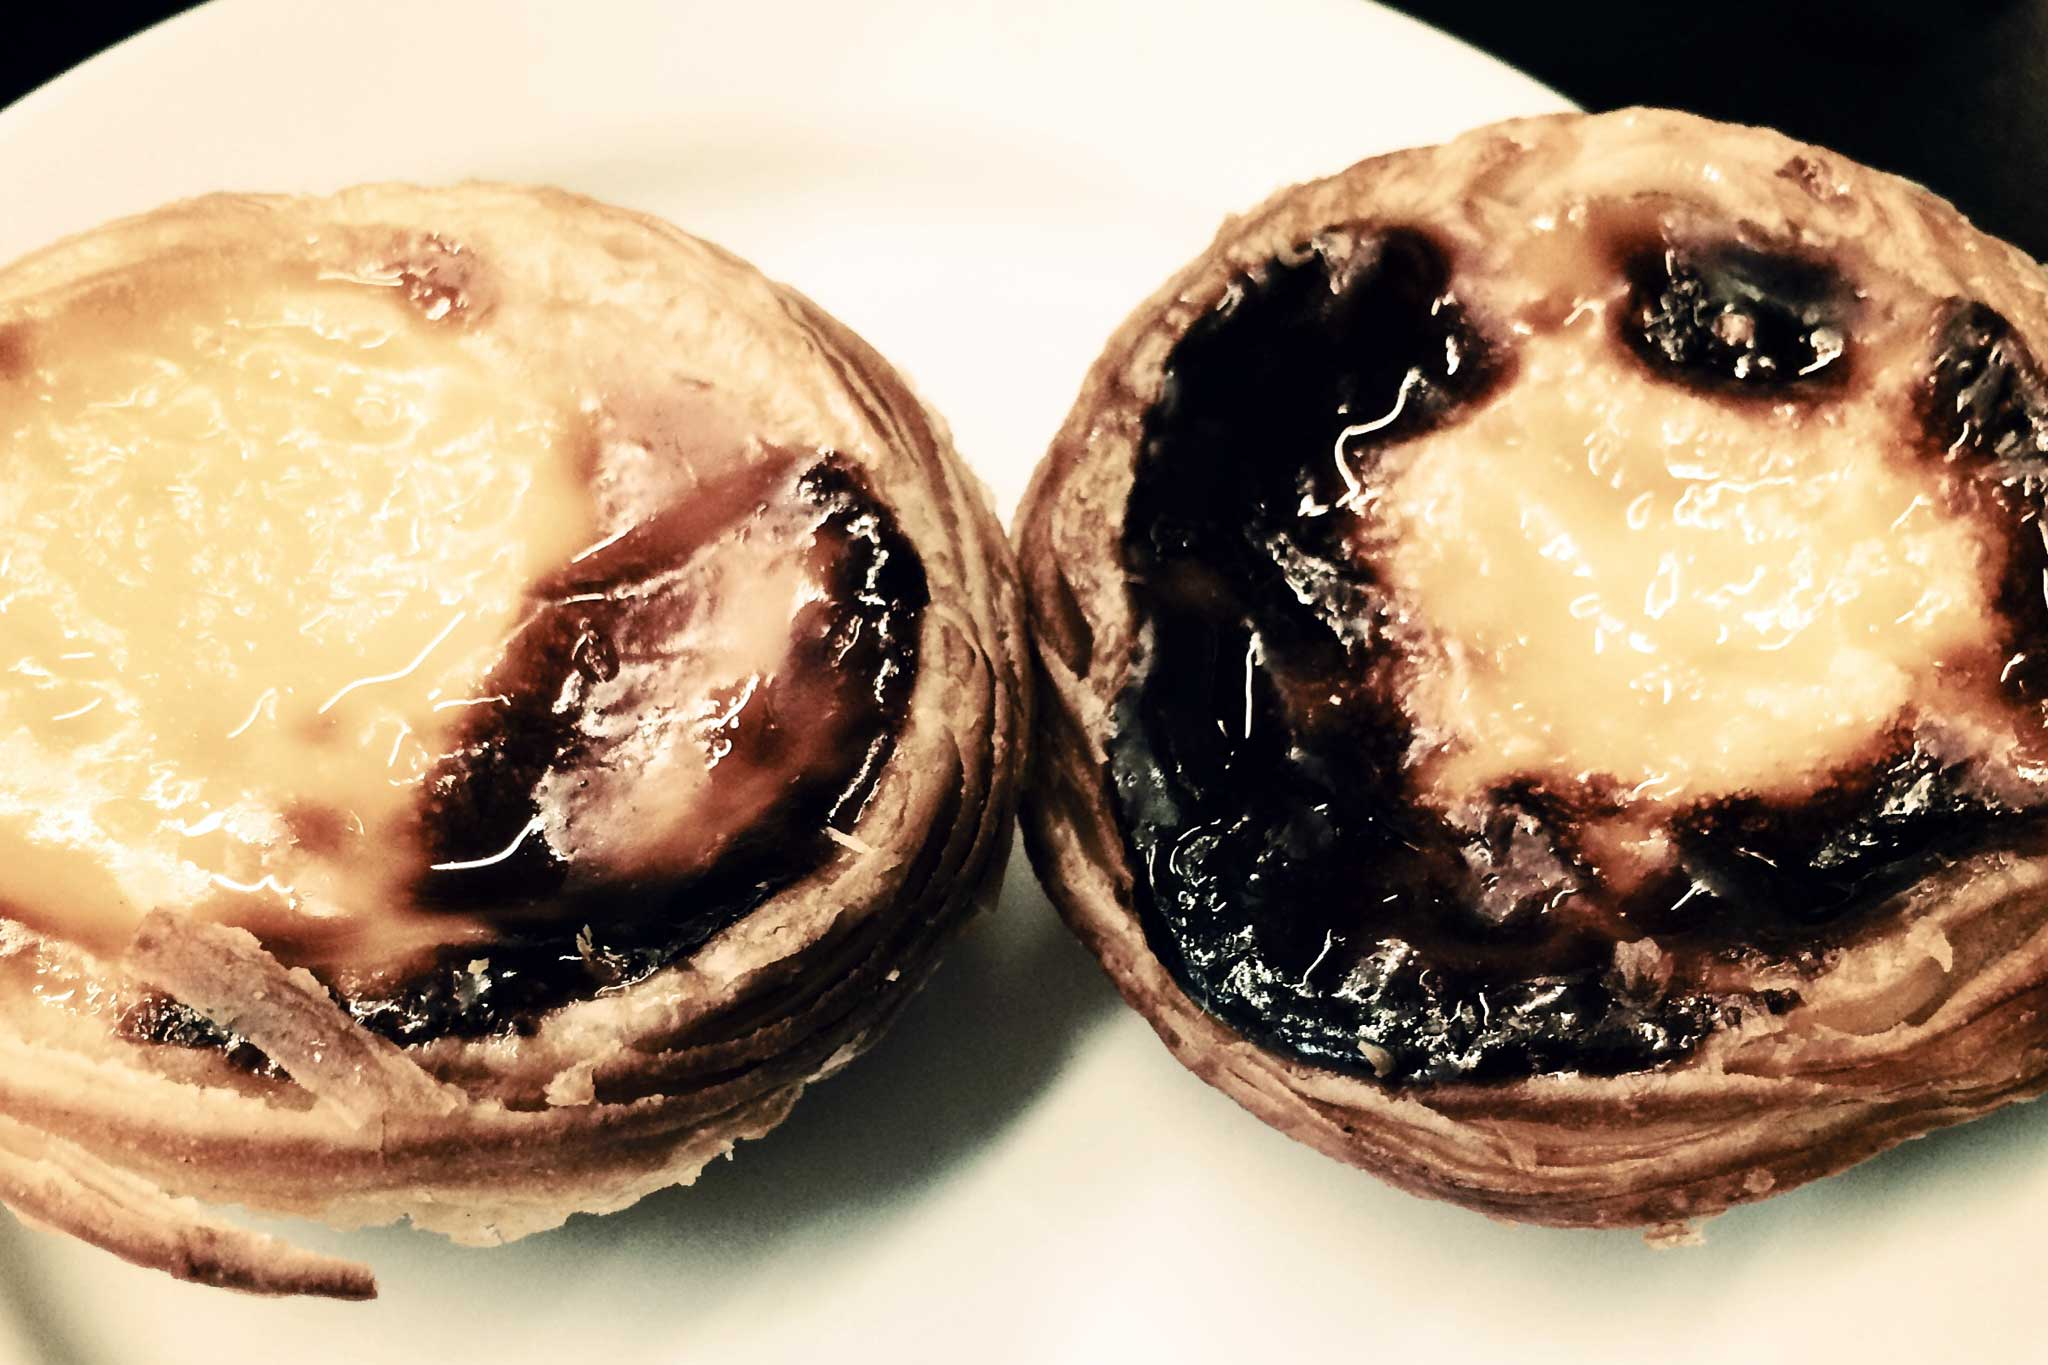 Lisbona_Nata_Pasteis